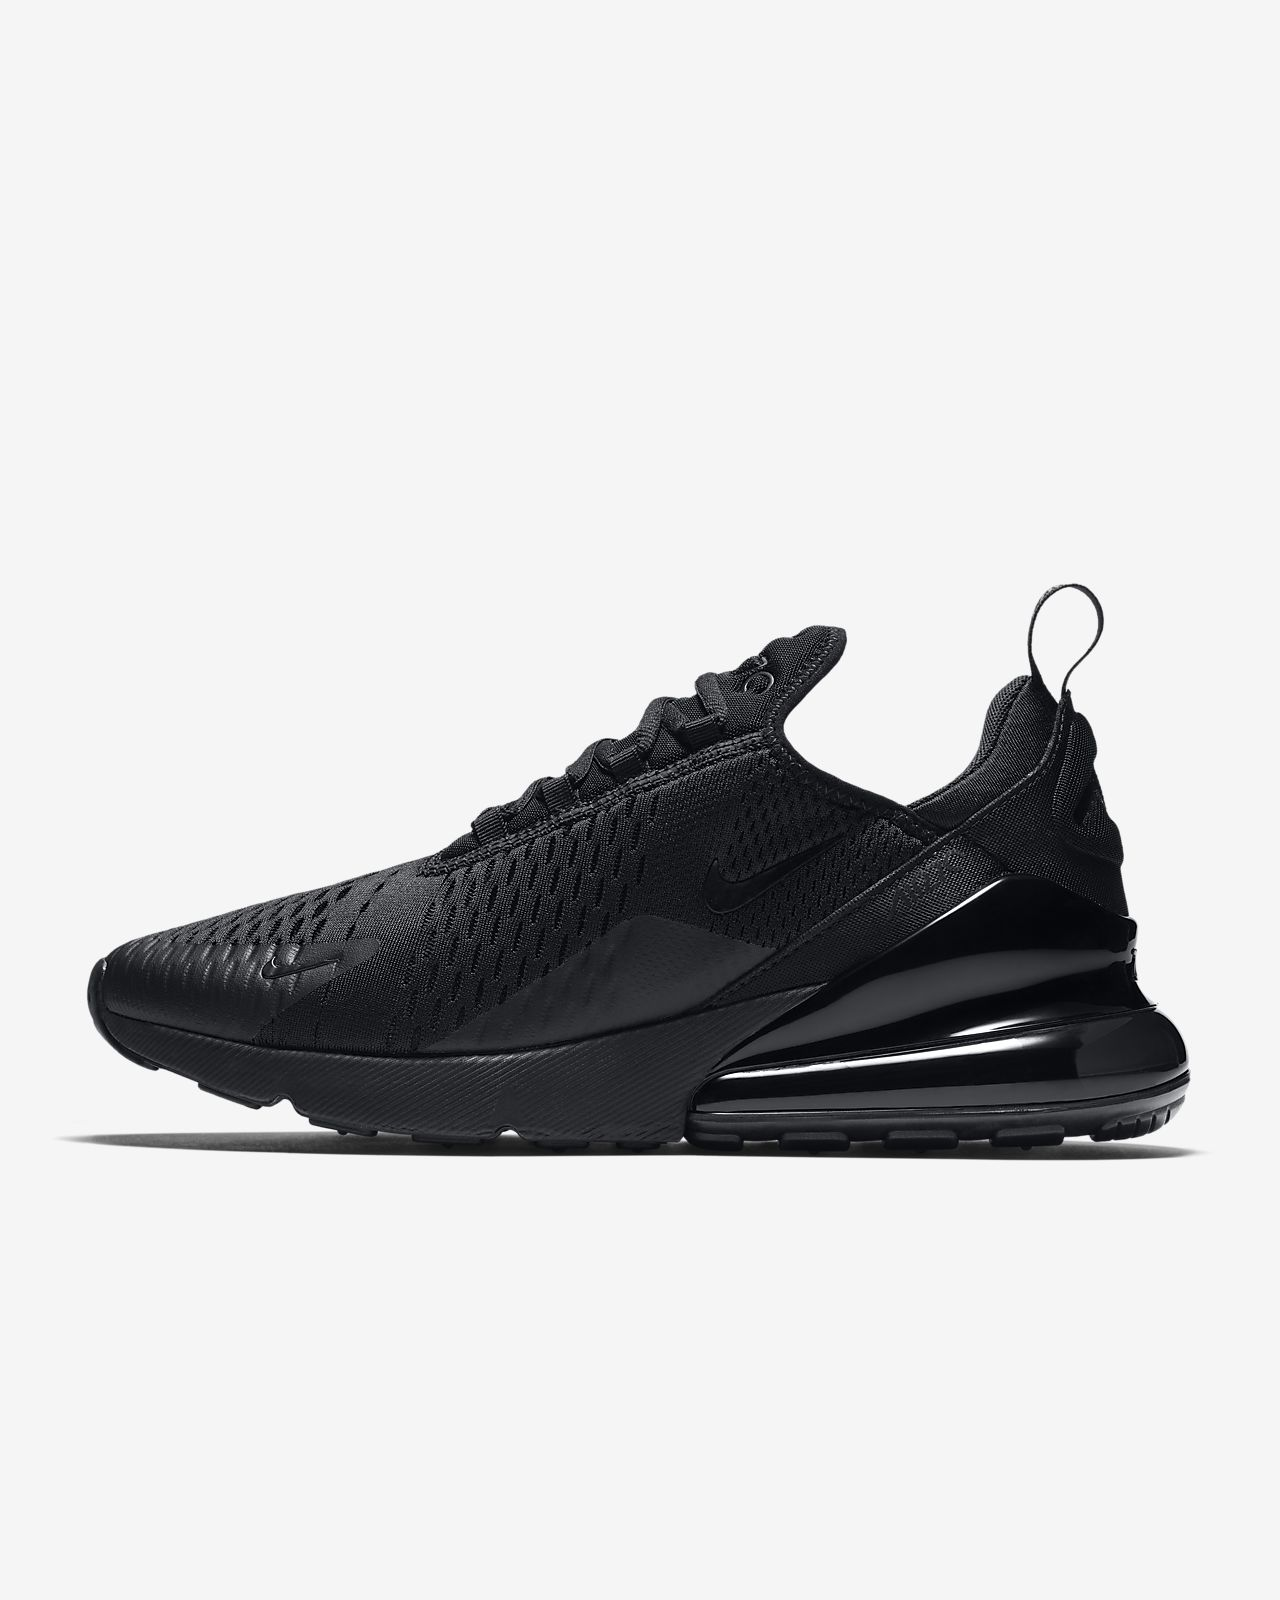 6e16372769ee Nike Air Max 270 Men s Shoe. Nike.com ZA